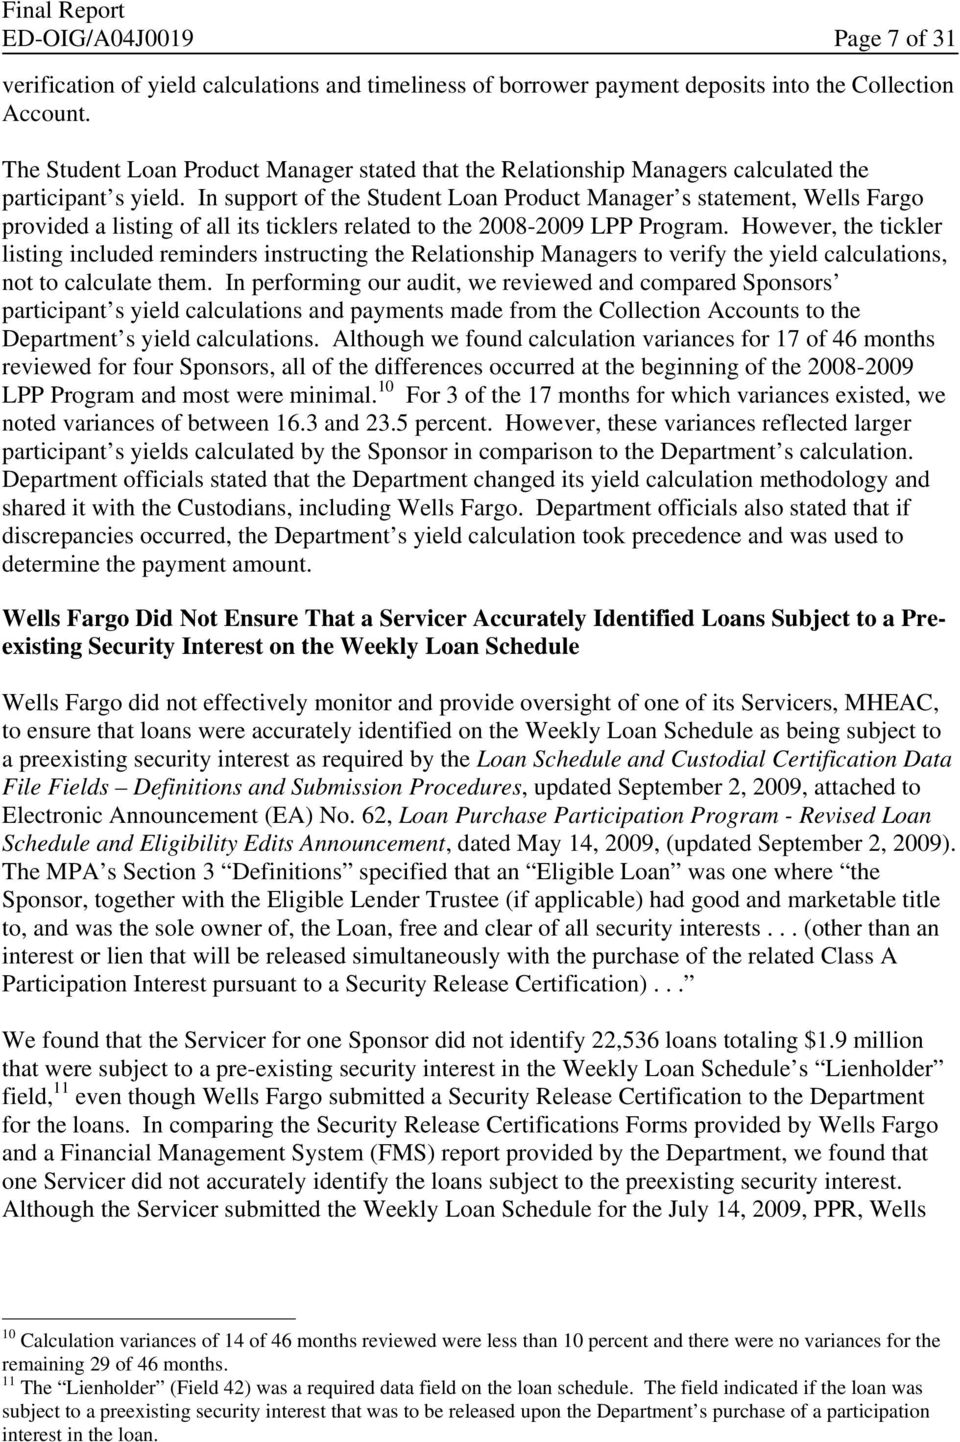 In support of the Student Loan Product Manager s statement, Wells Fargo provided a listing of all its ticklers related to the 2008-2009 LPP Program.